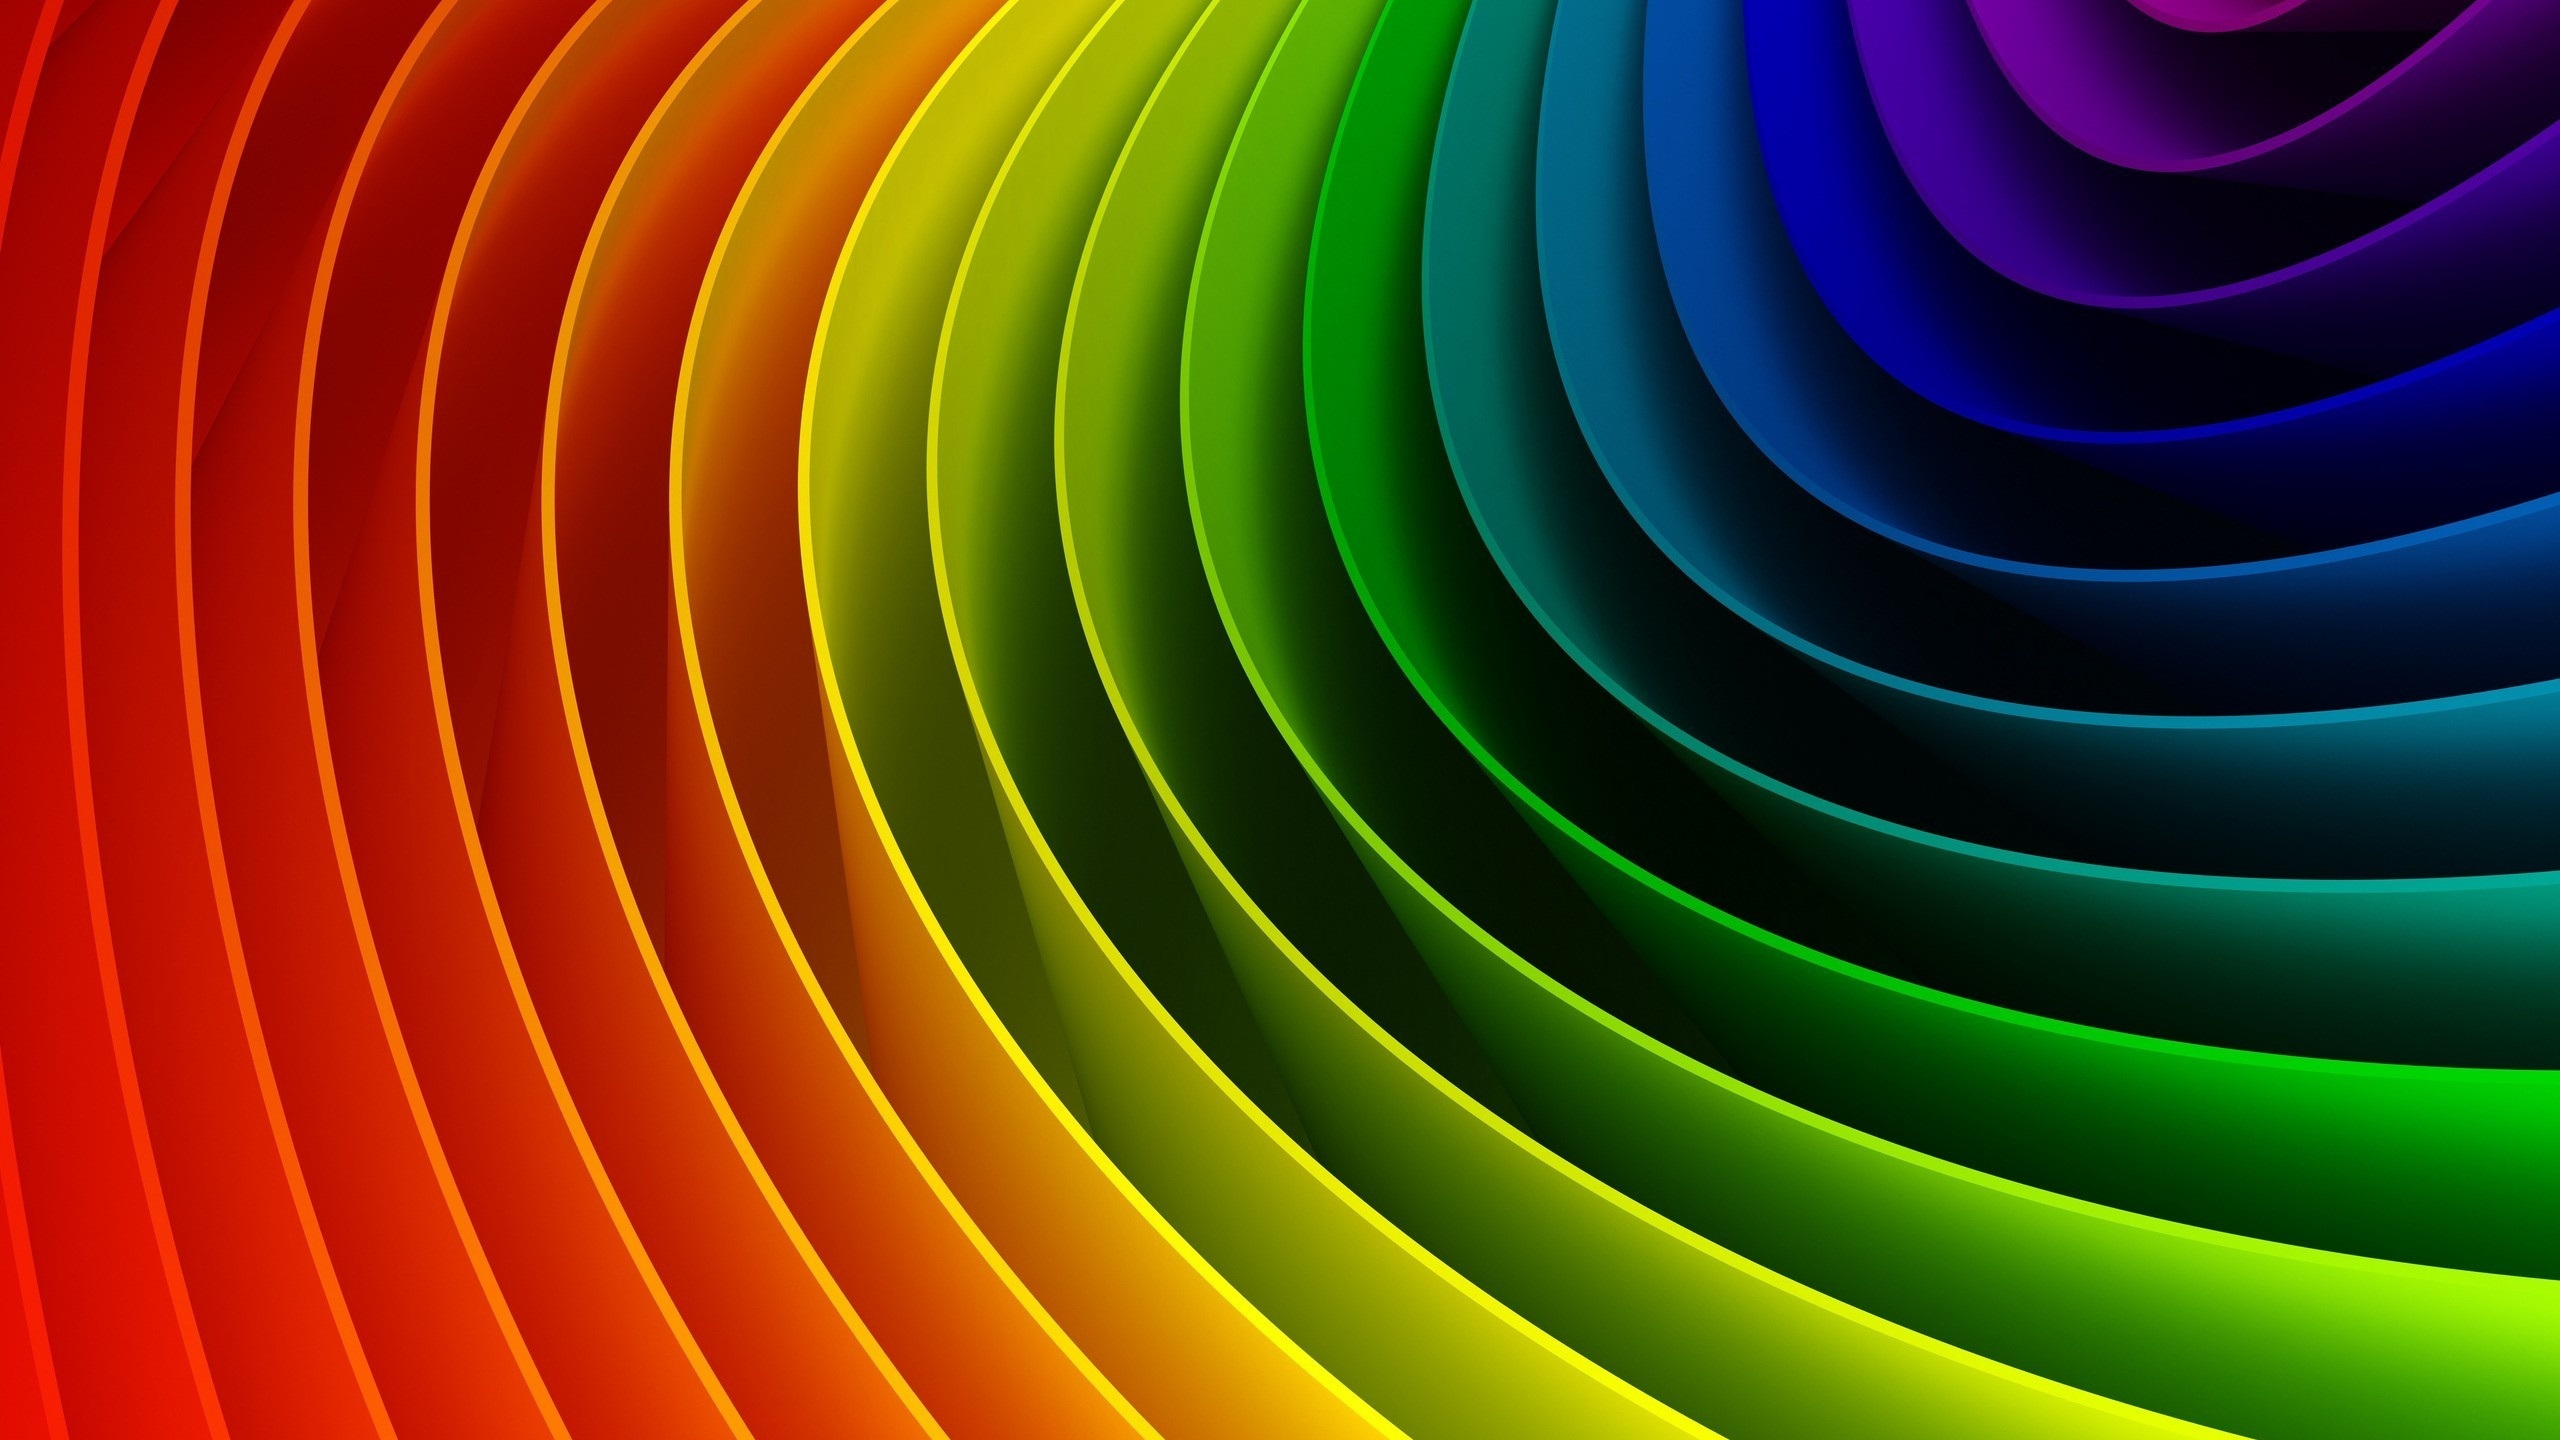 3d Curved Wallpaper Wallpaper Curved Colorful Rainbow 2560x1600 Hd Picture Image